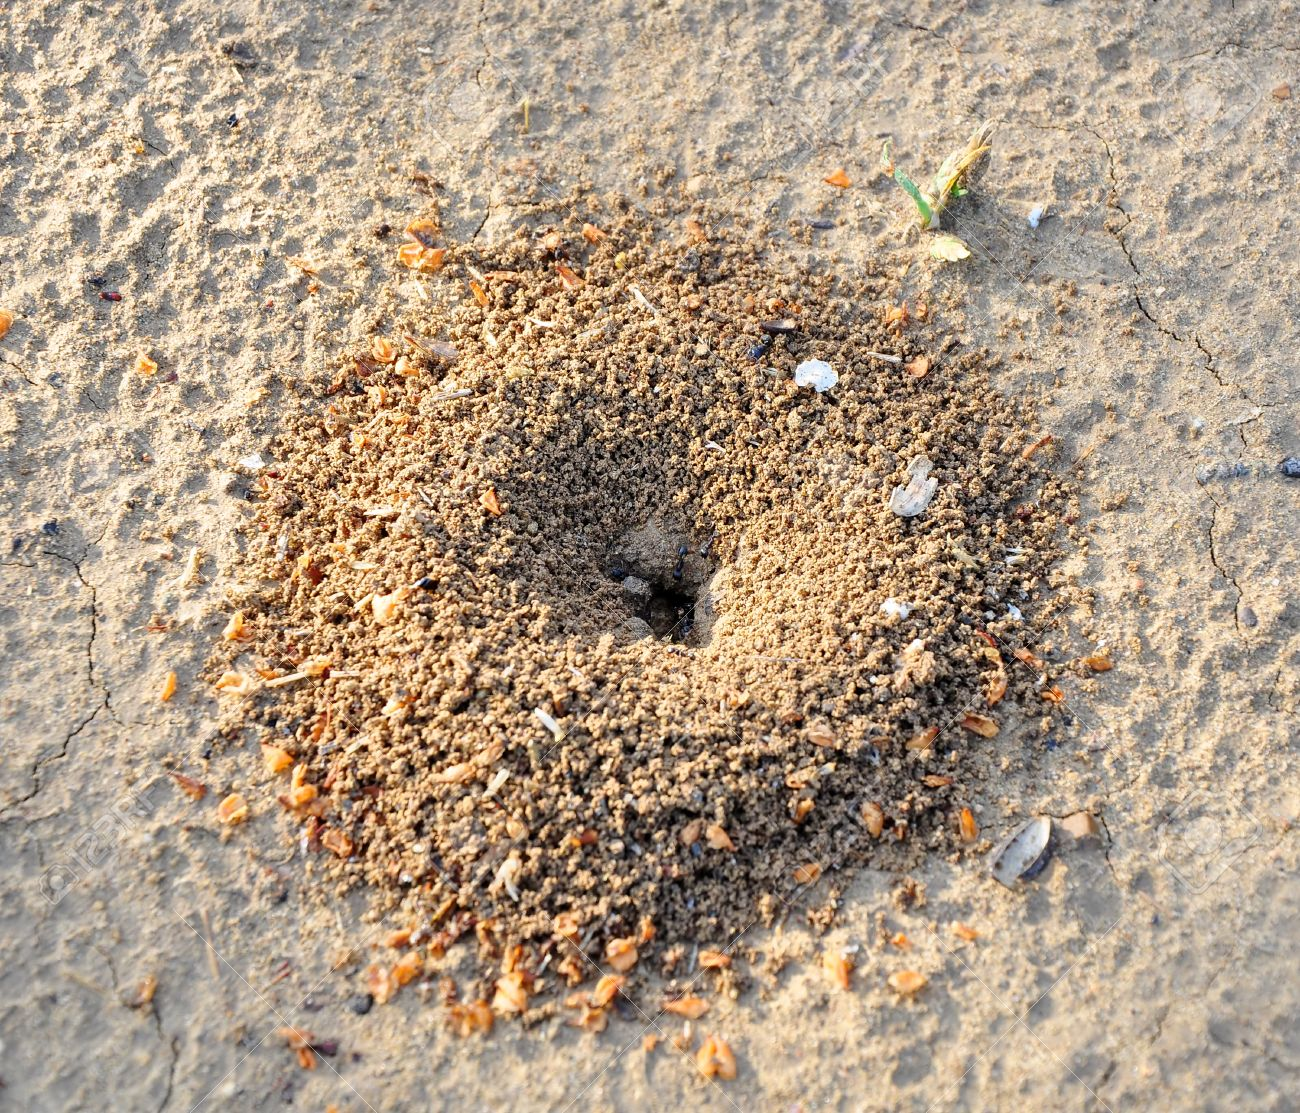 17435196-Sand-anthill-of-excavation-black-ants-Lazius-Stock-Photo.jpg